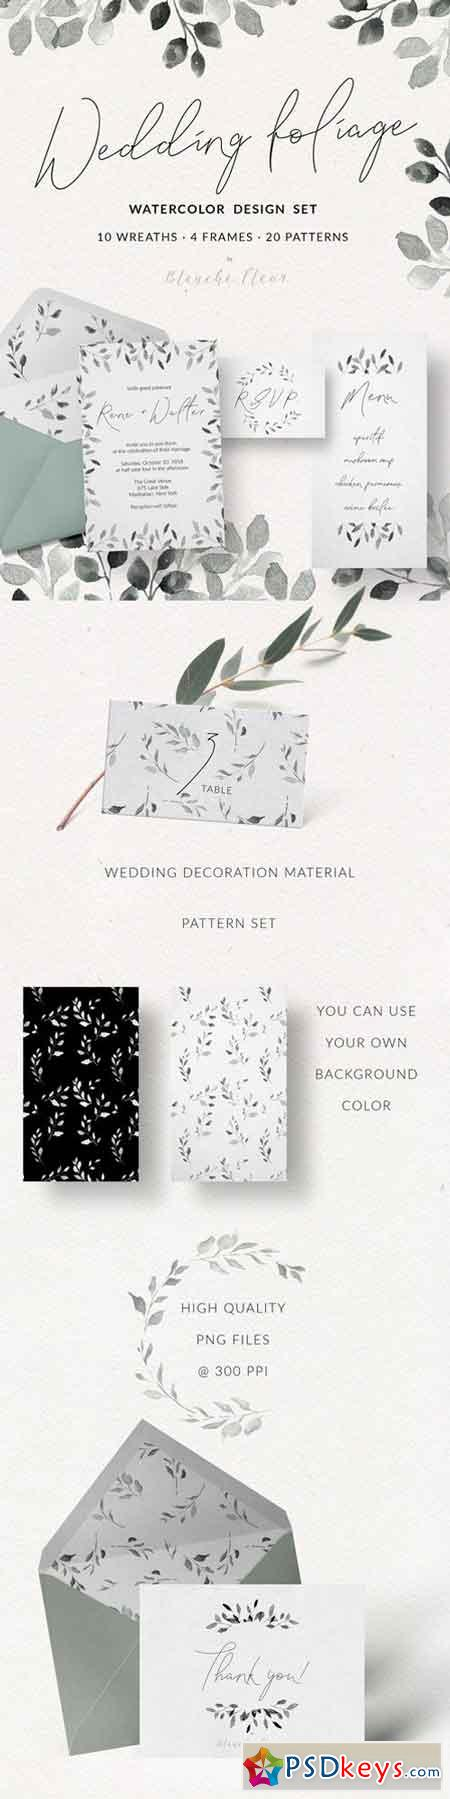 Wedding Foliage Design Set 2378863